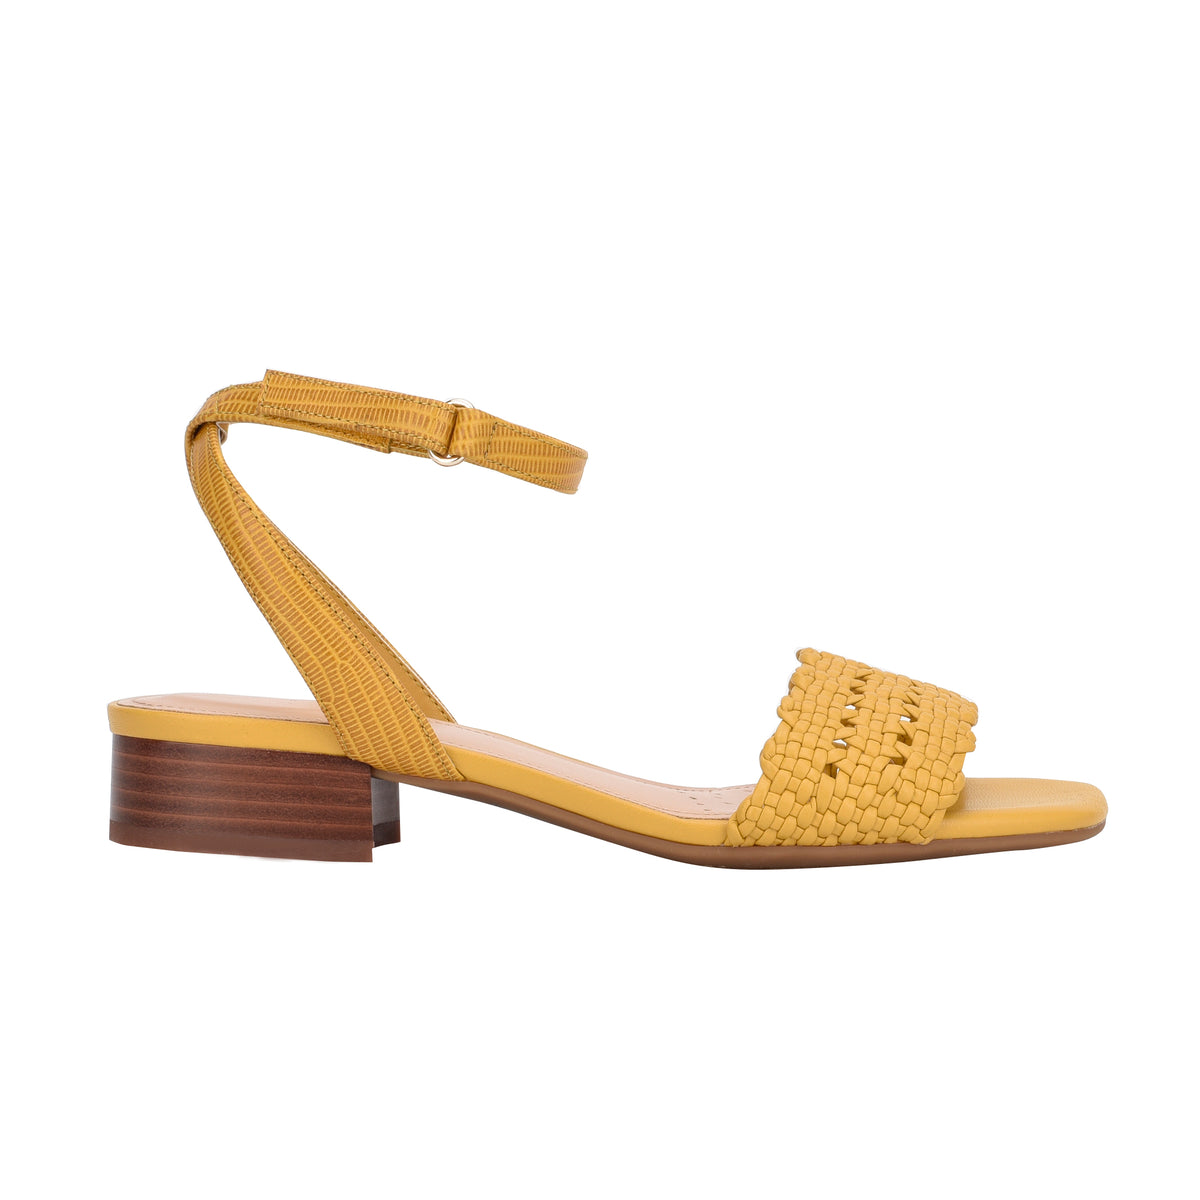 ingrid-ankle-strap-sandals-in-yellow